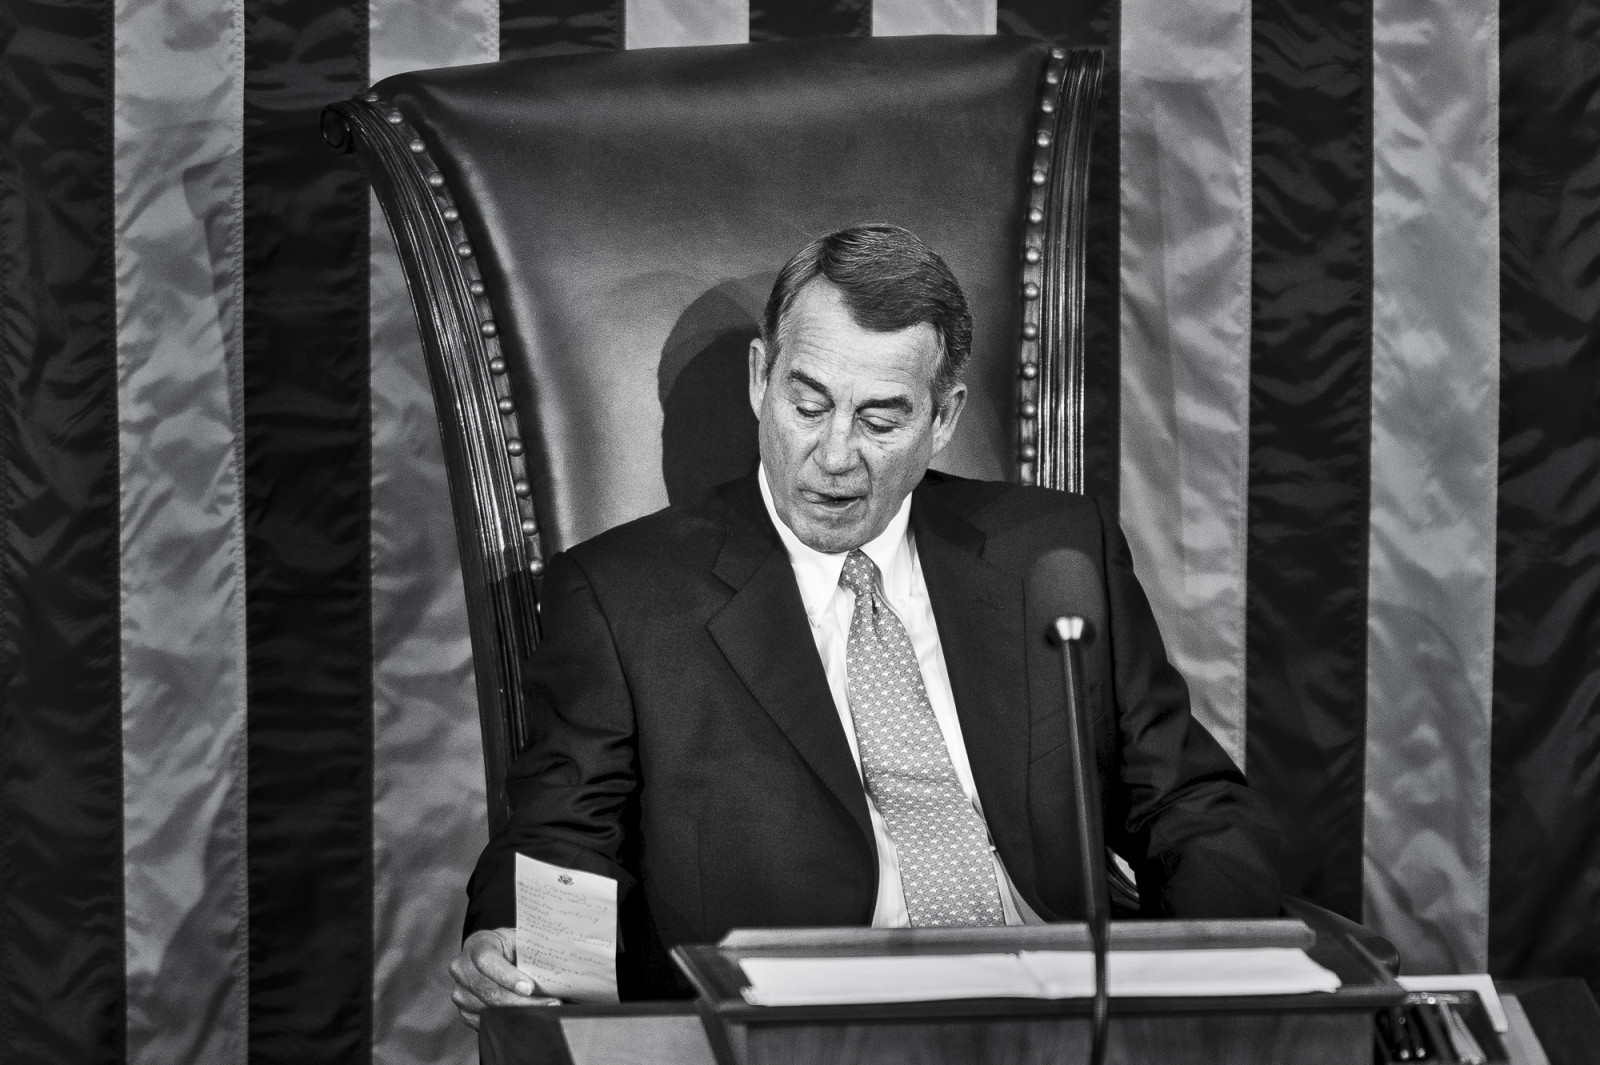 Speaker of the House John Boehner (R-OH) reads a personal note shortly after Rep. Paul Ryan (R-WI) was elected to be the  62nd Speaker of the House on October 29, 2015 in Washington, D.C. Earlier the outgoing Speaker, Rep. John Boehner (R-OH), gave his farewell address to Congress. He is retiring on October 30, 2015. Photo by Pete Marovich/UPI